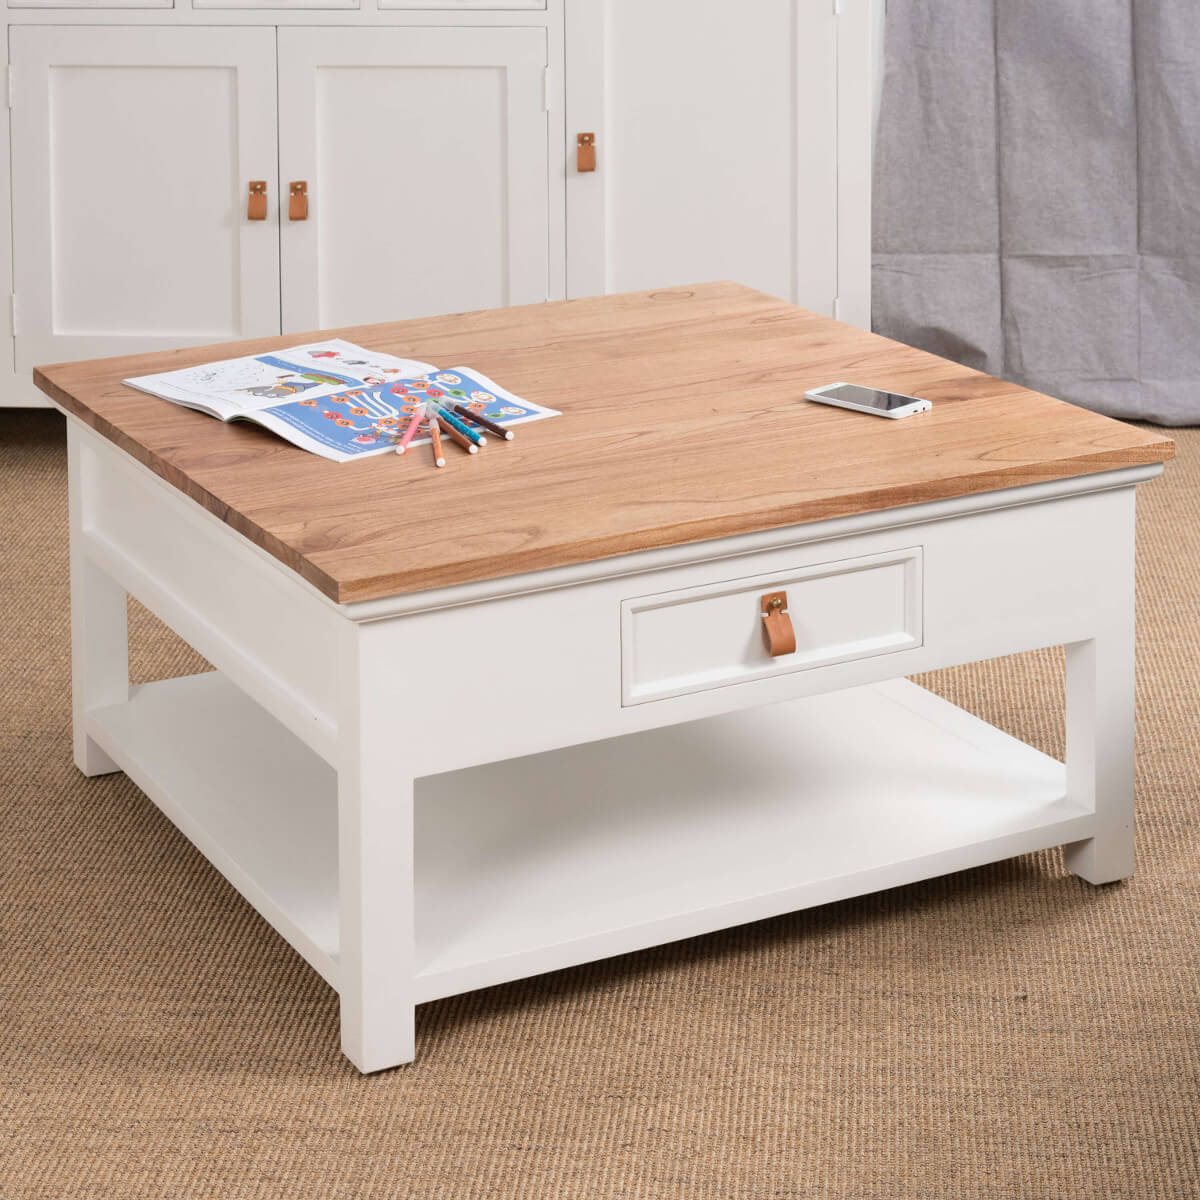 Table basse de salon en bois d 39 acajou et de pin massif chic rectangle - Table basse de salon blanche ...